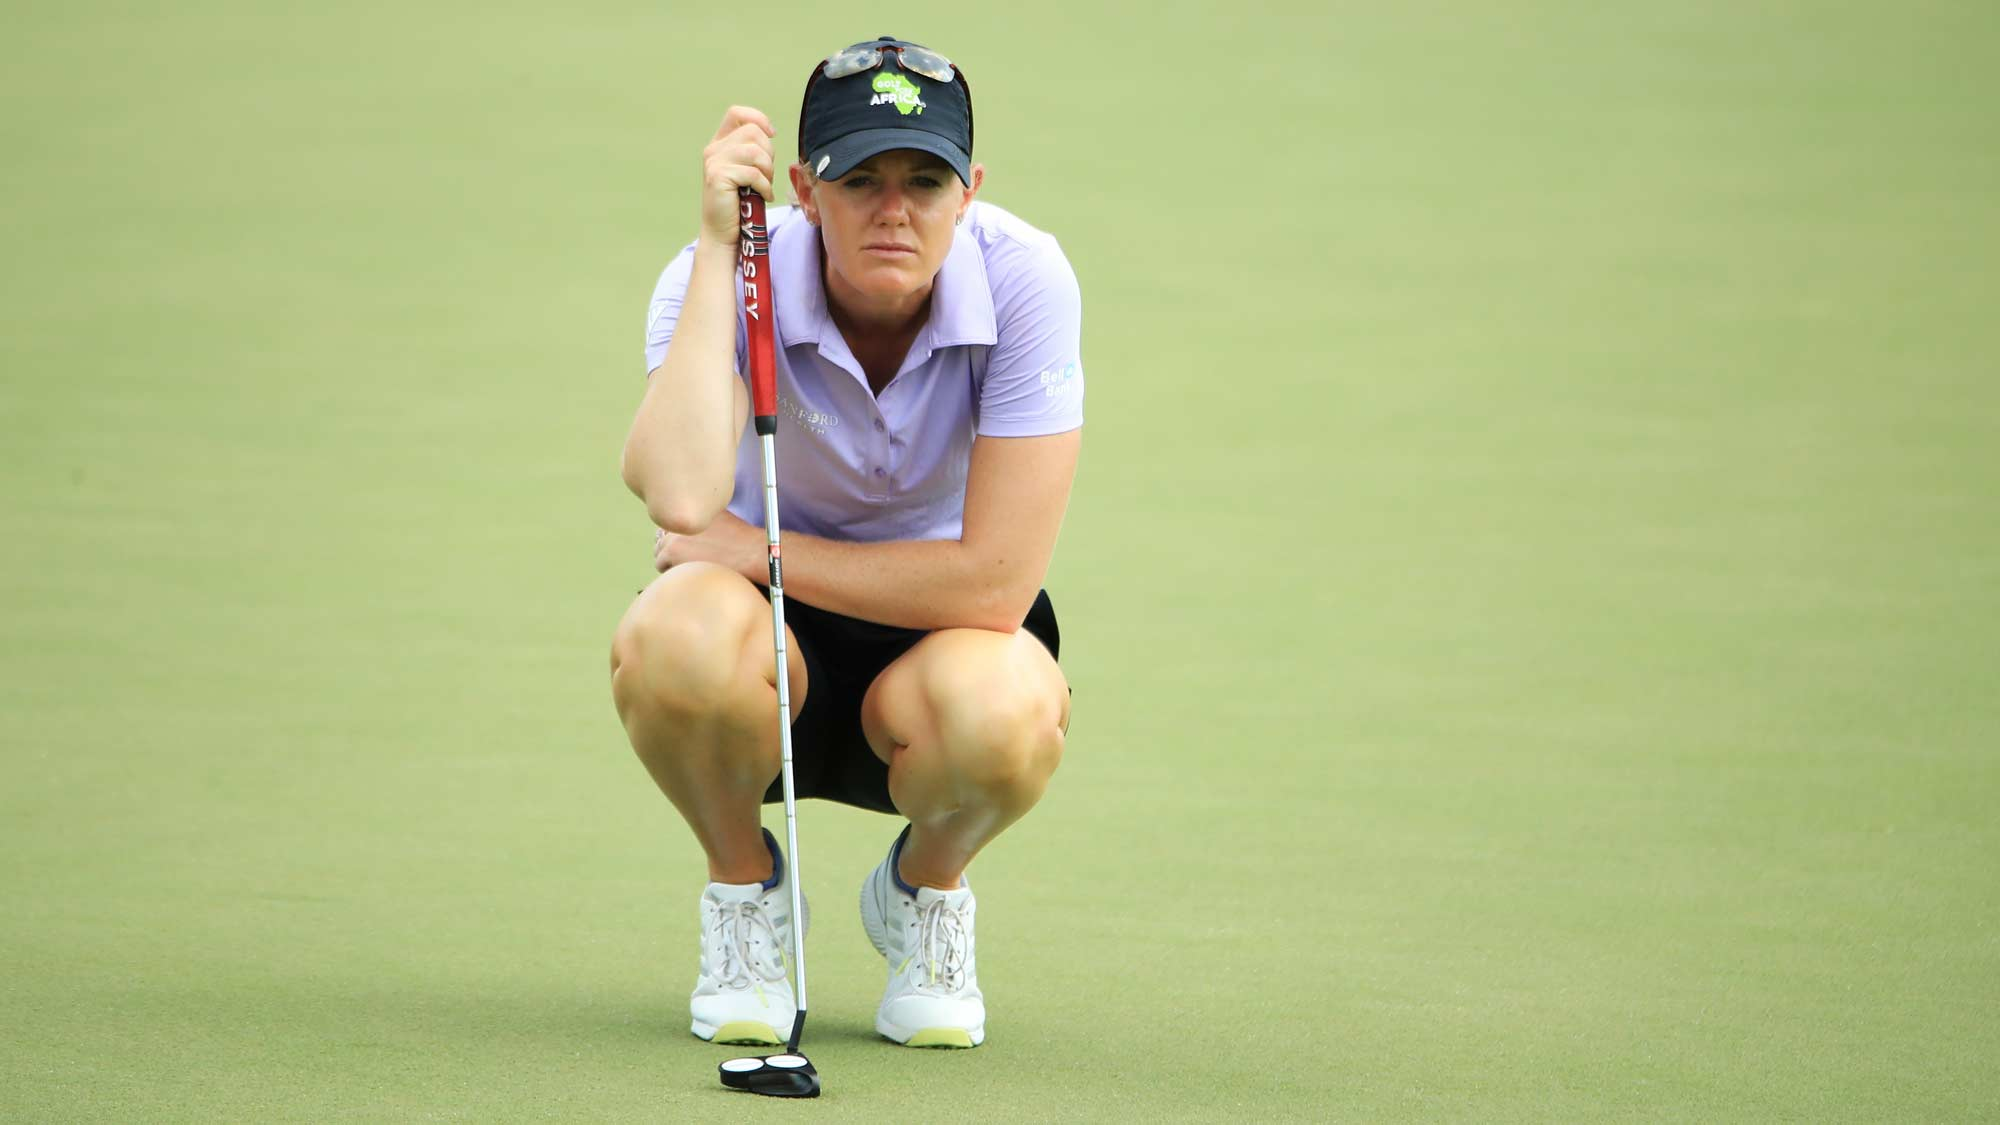 Amy Olson of the United States lines up a putt on the 18th green during the second round of the HSBC Women's World Championship at Sentosa Golf Club on March 01, 2019 in Singapore.